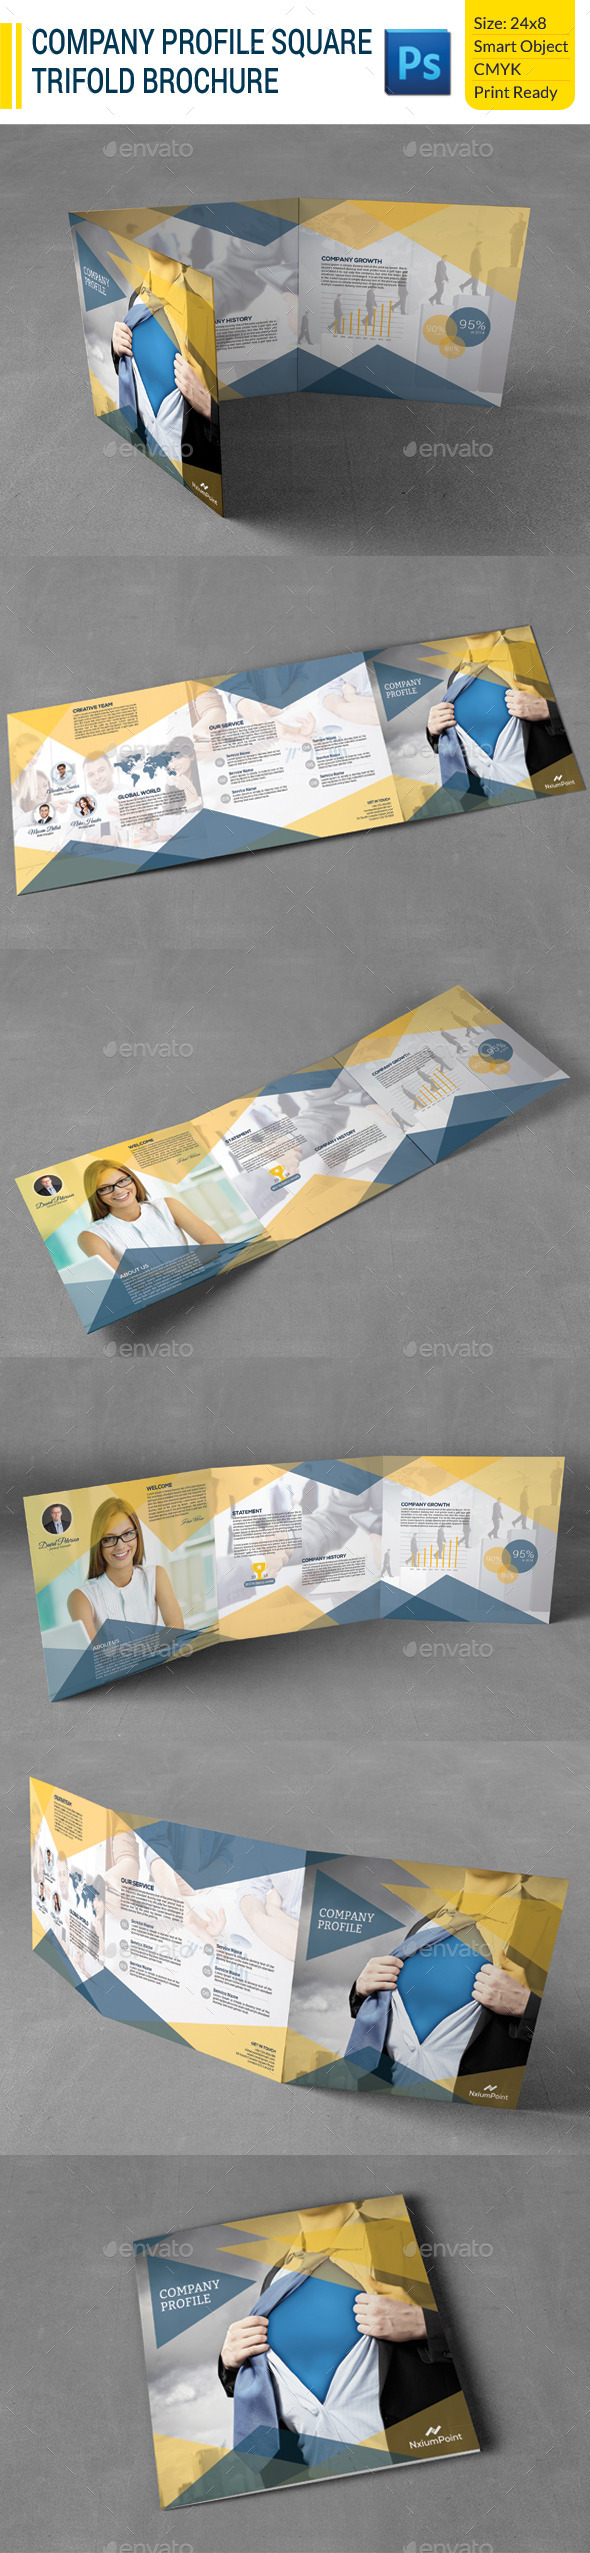 GraphicRiver Company Profile Square Trifold Brochure 9981846